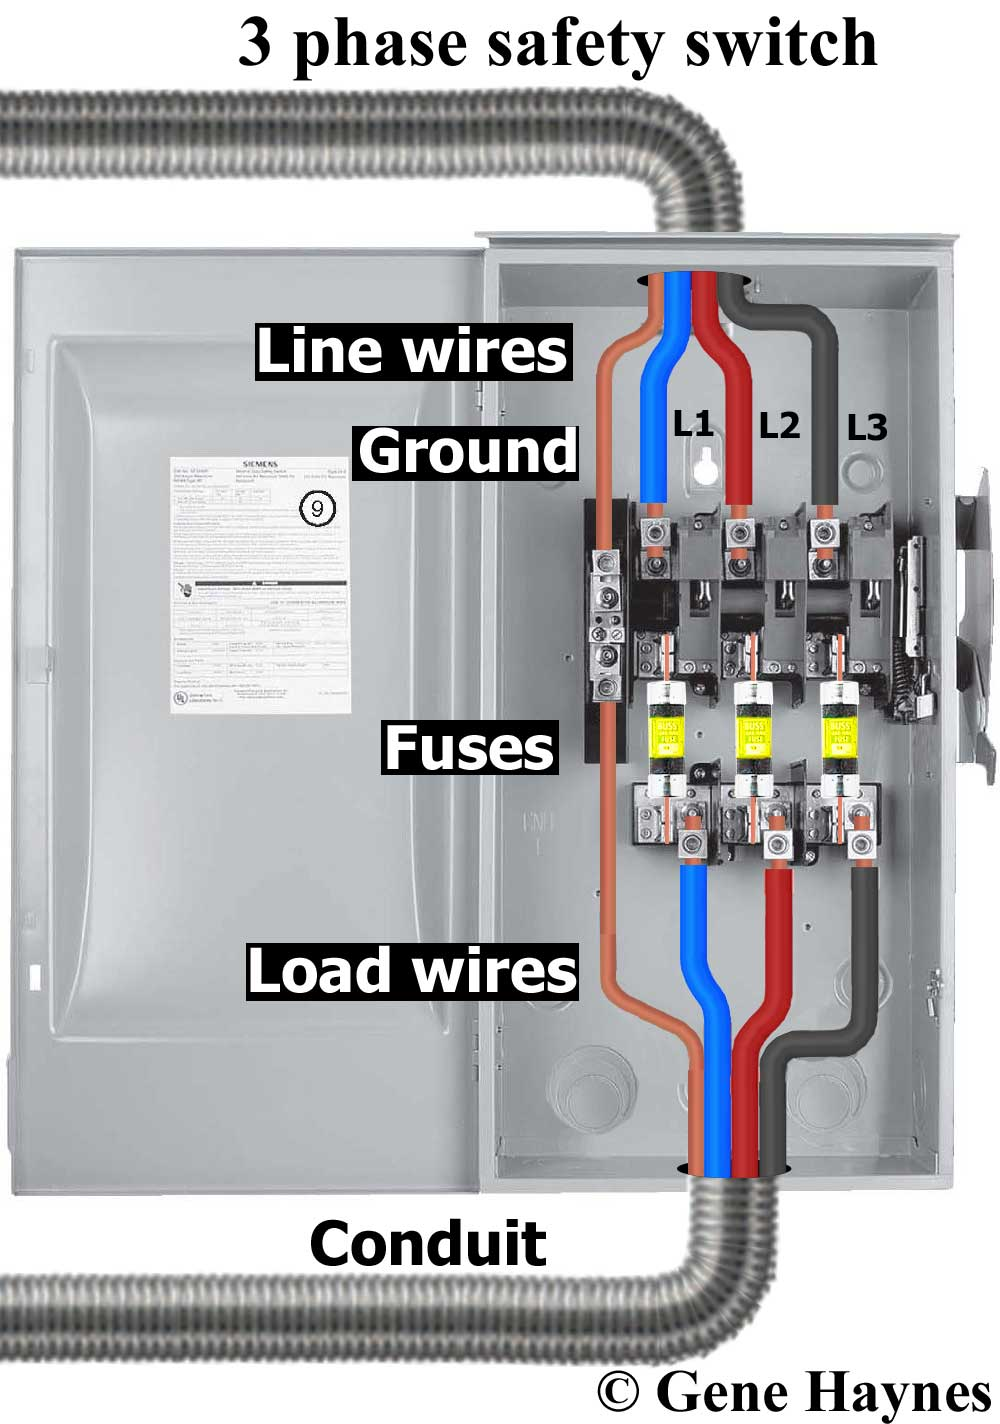 how to wire safety switch rh waterheatertimer org 3 Phase Fused Disconnect Switch 60 Amp Fuse Box